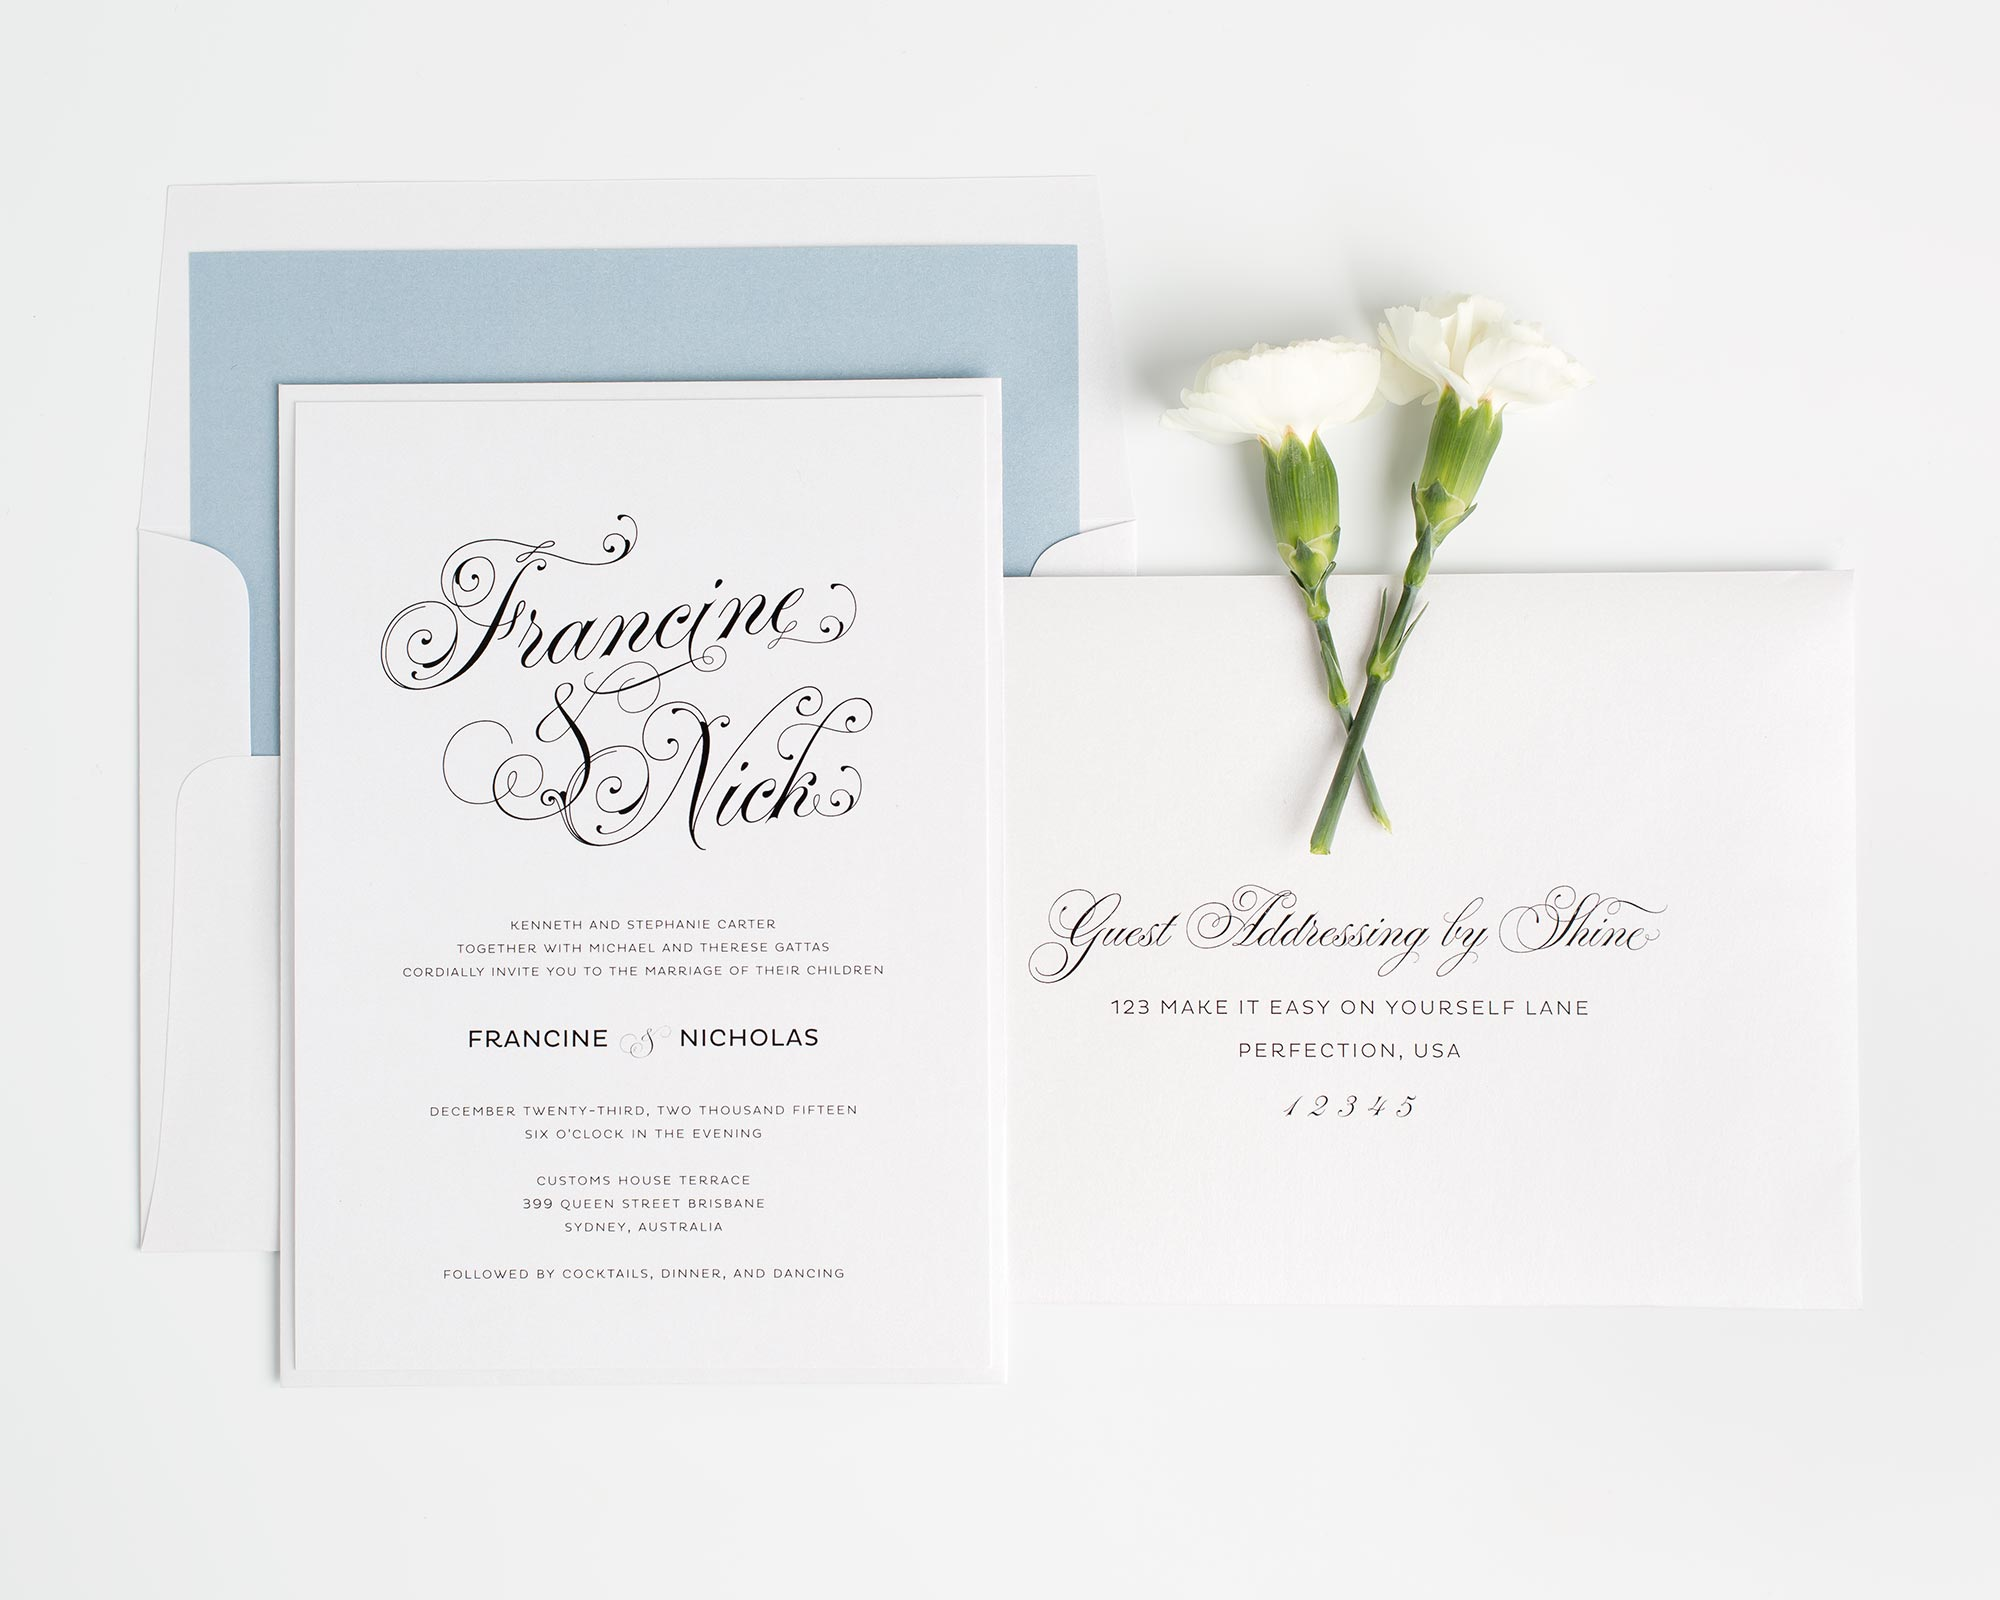 Glamorous script wedding invitations wedding invitations by shine solutioingenieria Choice Image